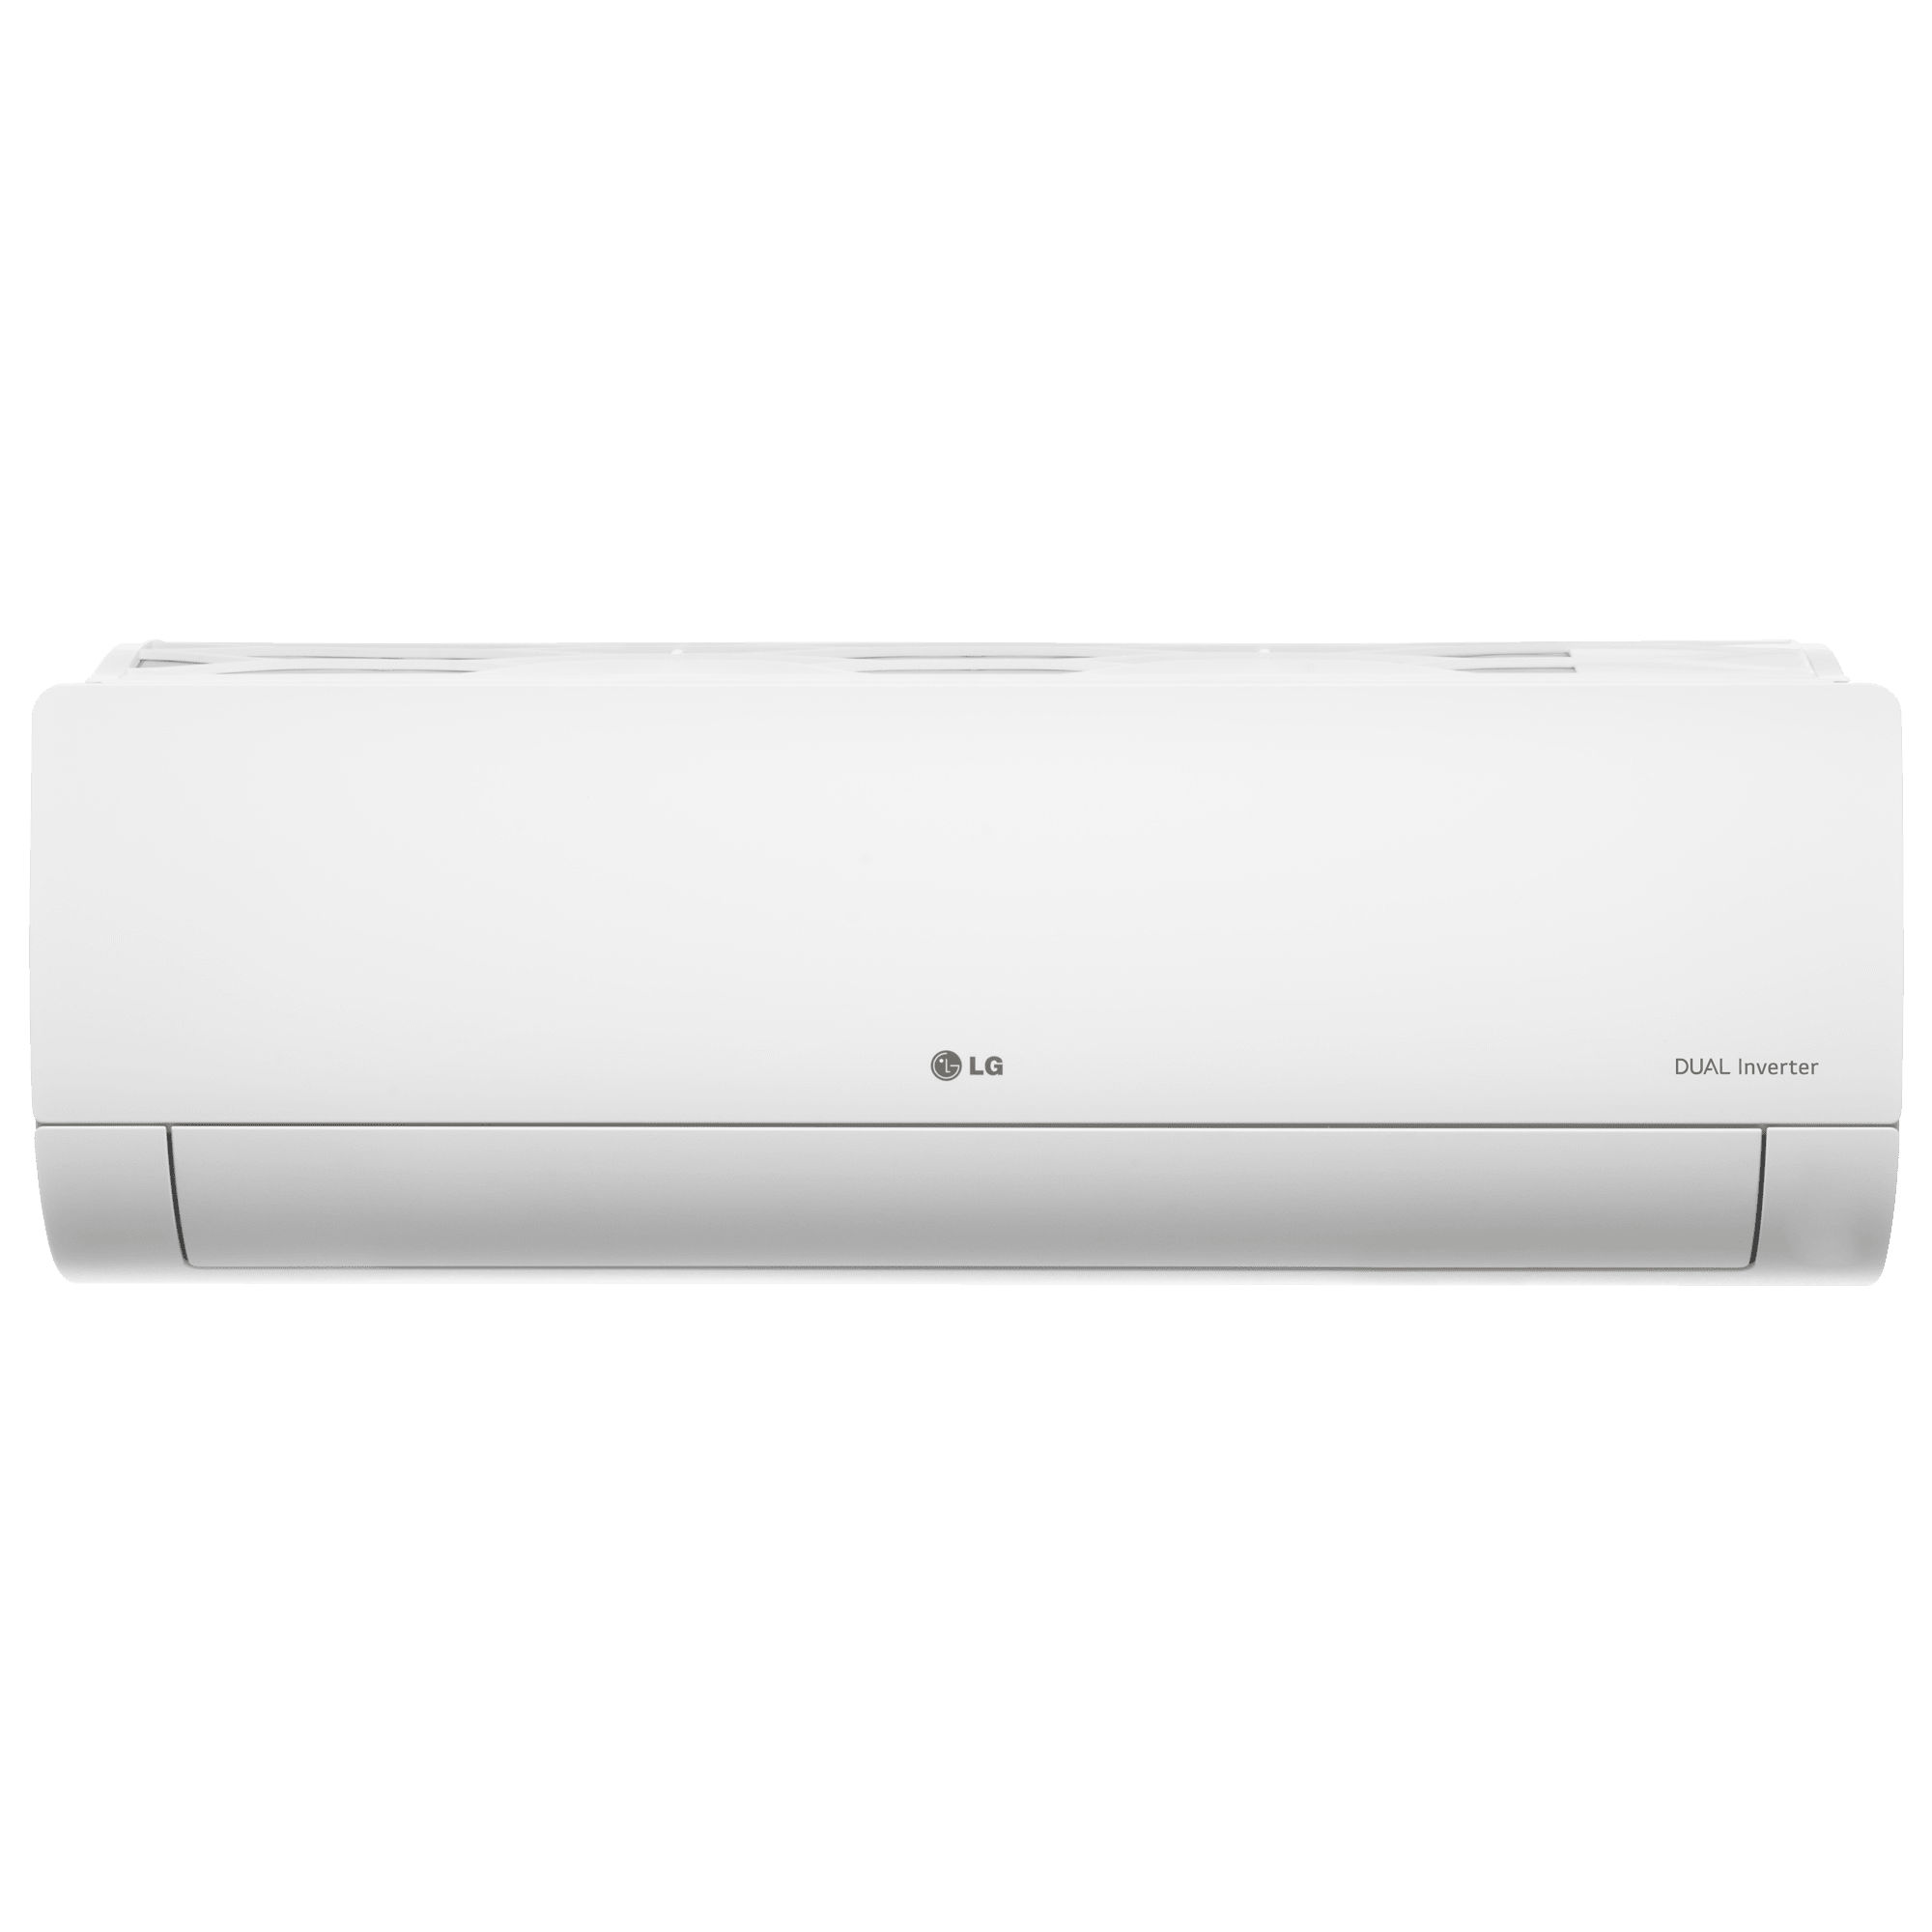 LG 1.5 Ton 5 Star Inverter Split AC (Air Purification Function, Copper Condenser, MS-Q18ANZA, White)